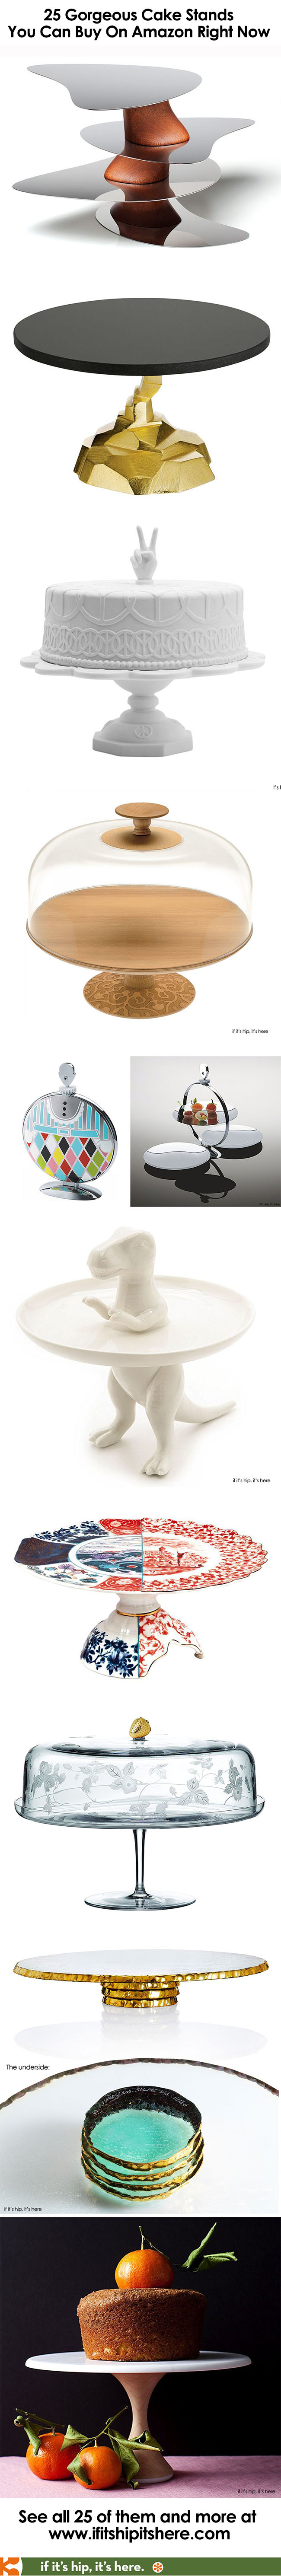 Baking friends! We've found the 25 most amazing cake stands / cake plates available on Amazon right now. From Alessi to Studio Job, Portmeirion to Nambé, Seletti to Waterford. These also make wonderful housewarming, hostess and holiday gifts.